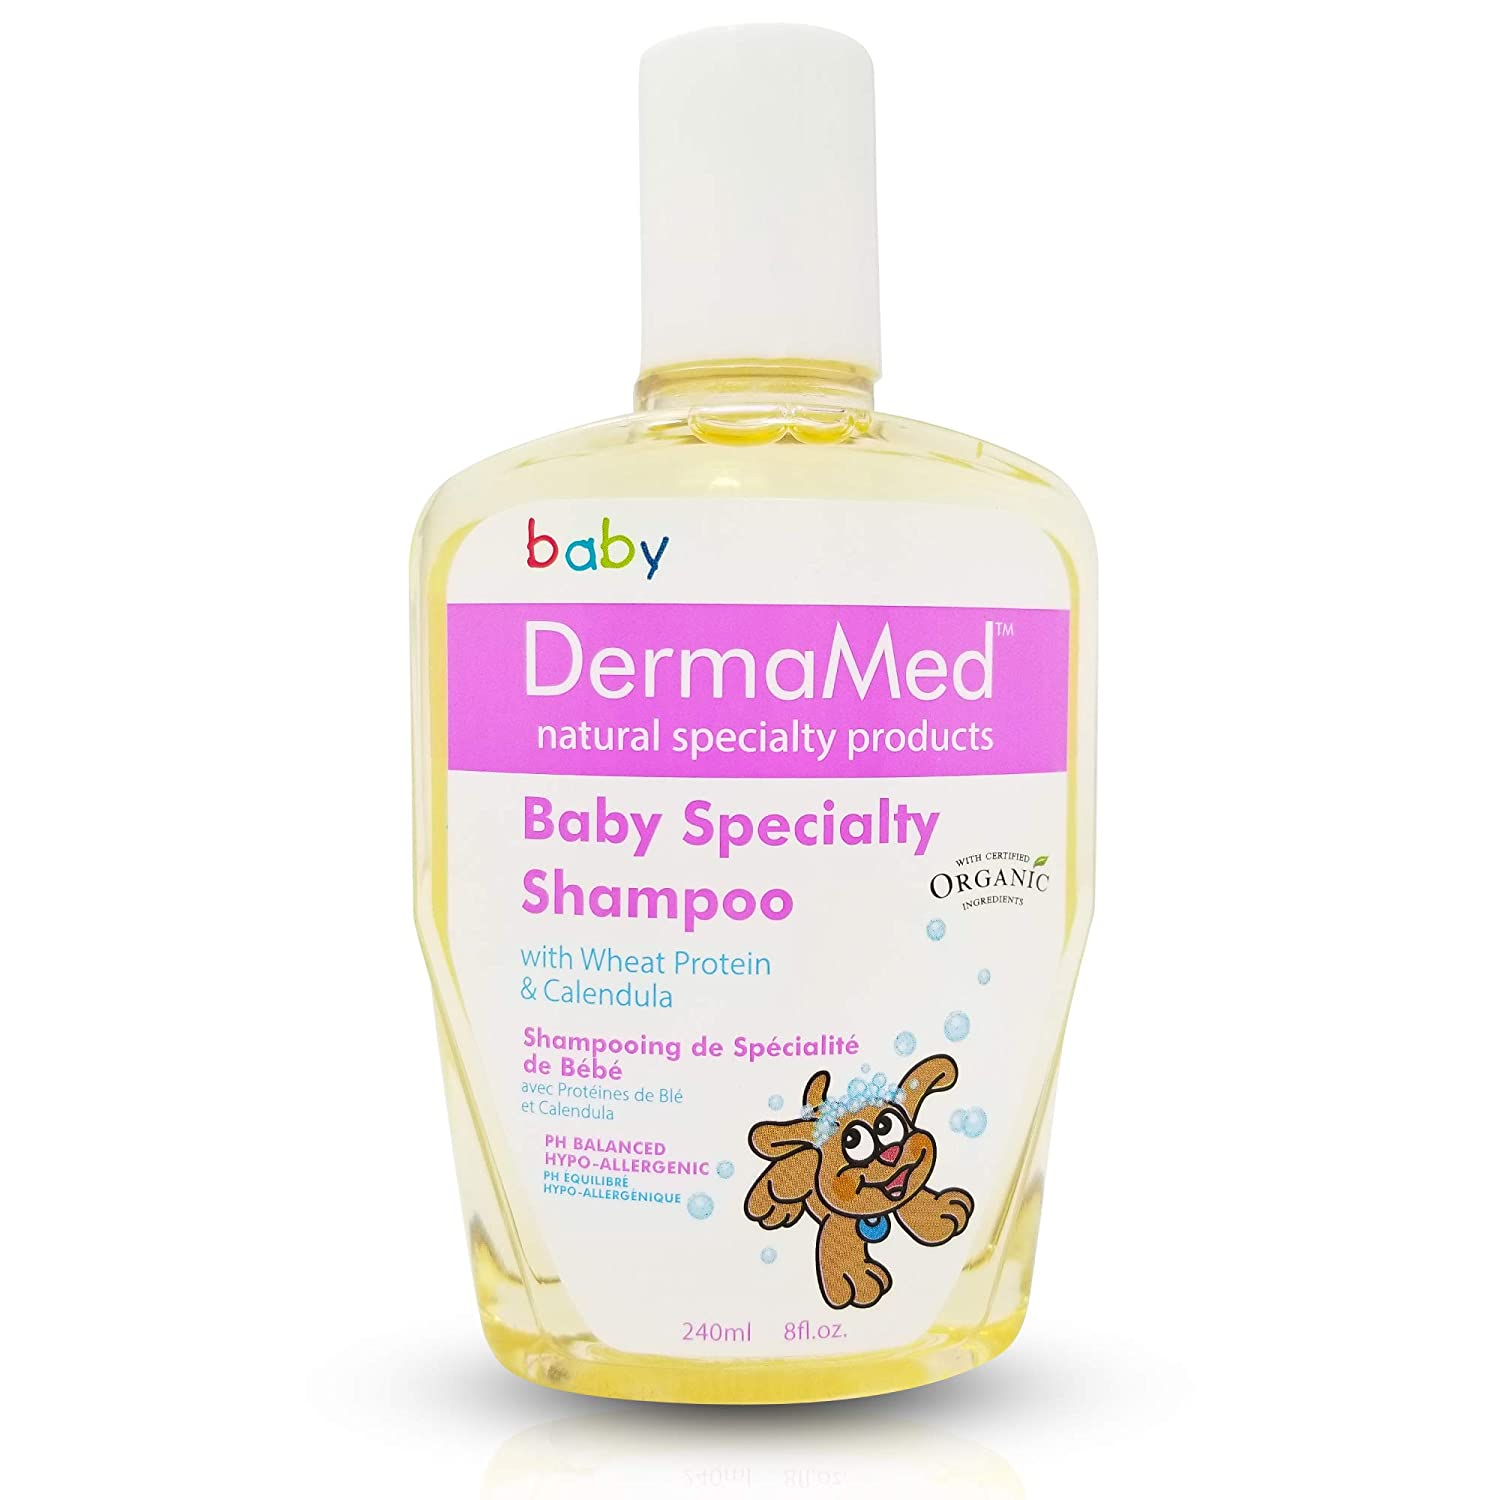 Best Organic Baby Specialty Shampoo, Cleanses, Moisterizes Delicate Scalp with Wheat Protein, Calendula, DERMAMED Made in Canada Vita Activate